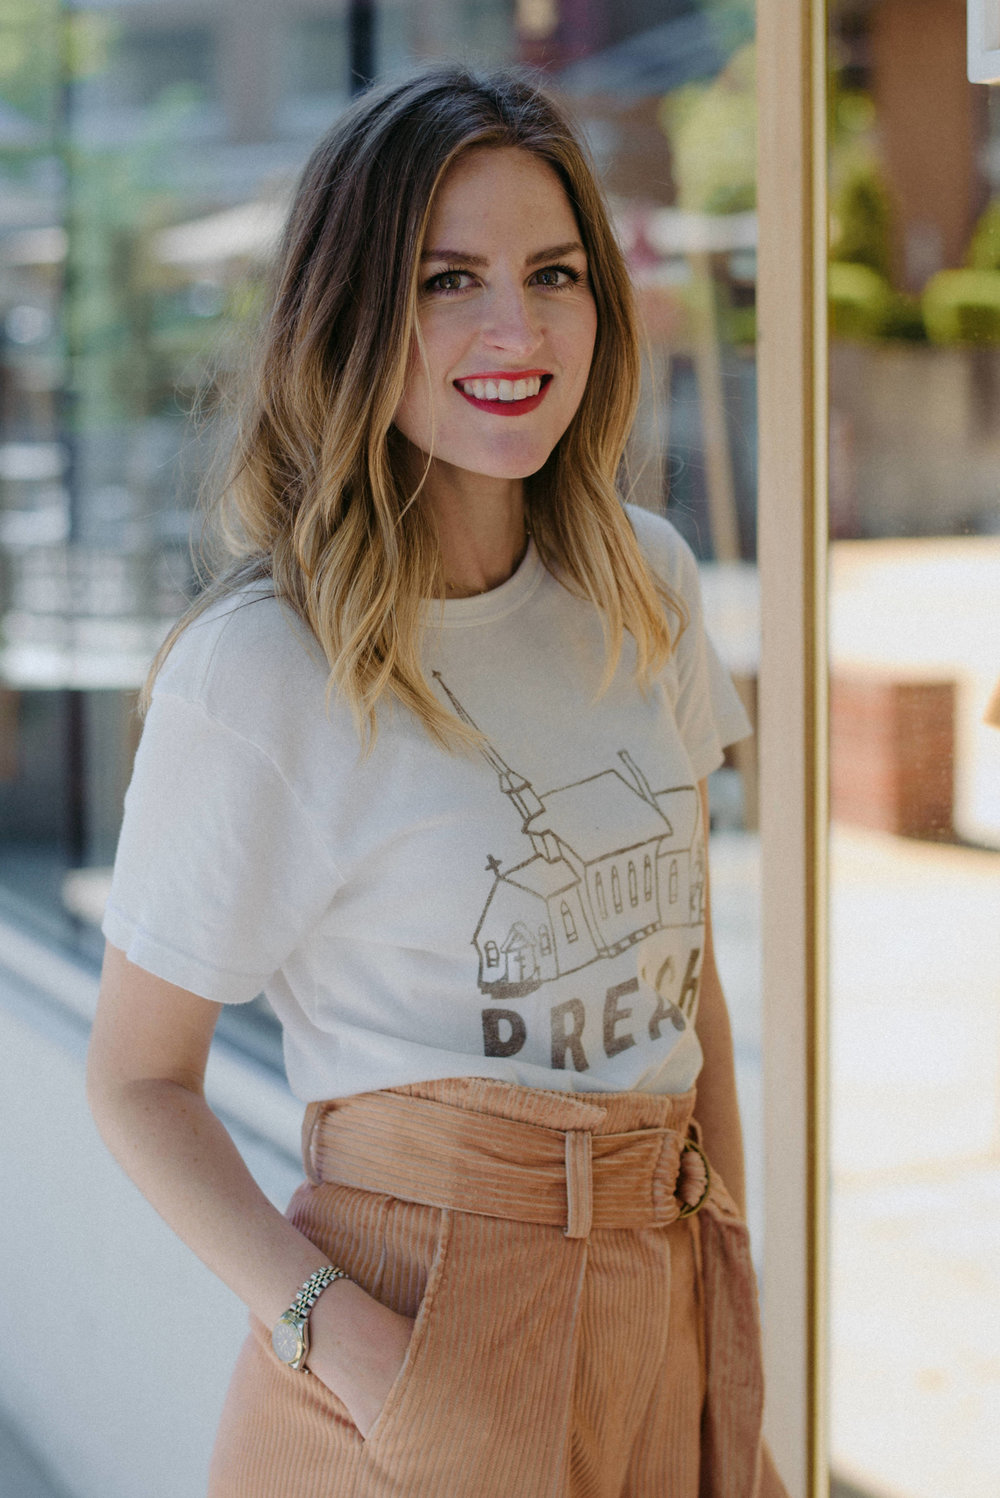 Dramatic pants with a casual tee // A Week Of  Nashville-Chic Ethical Outfits With Jordan Soderholm, Fashion Director At ABLE on The Good Trade